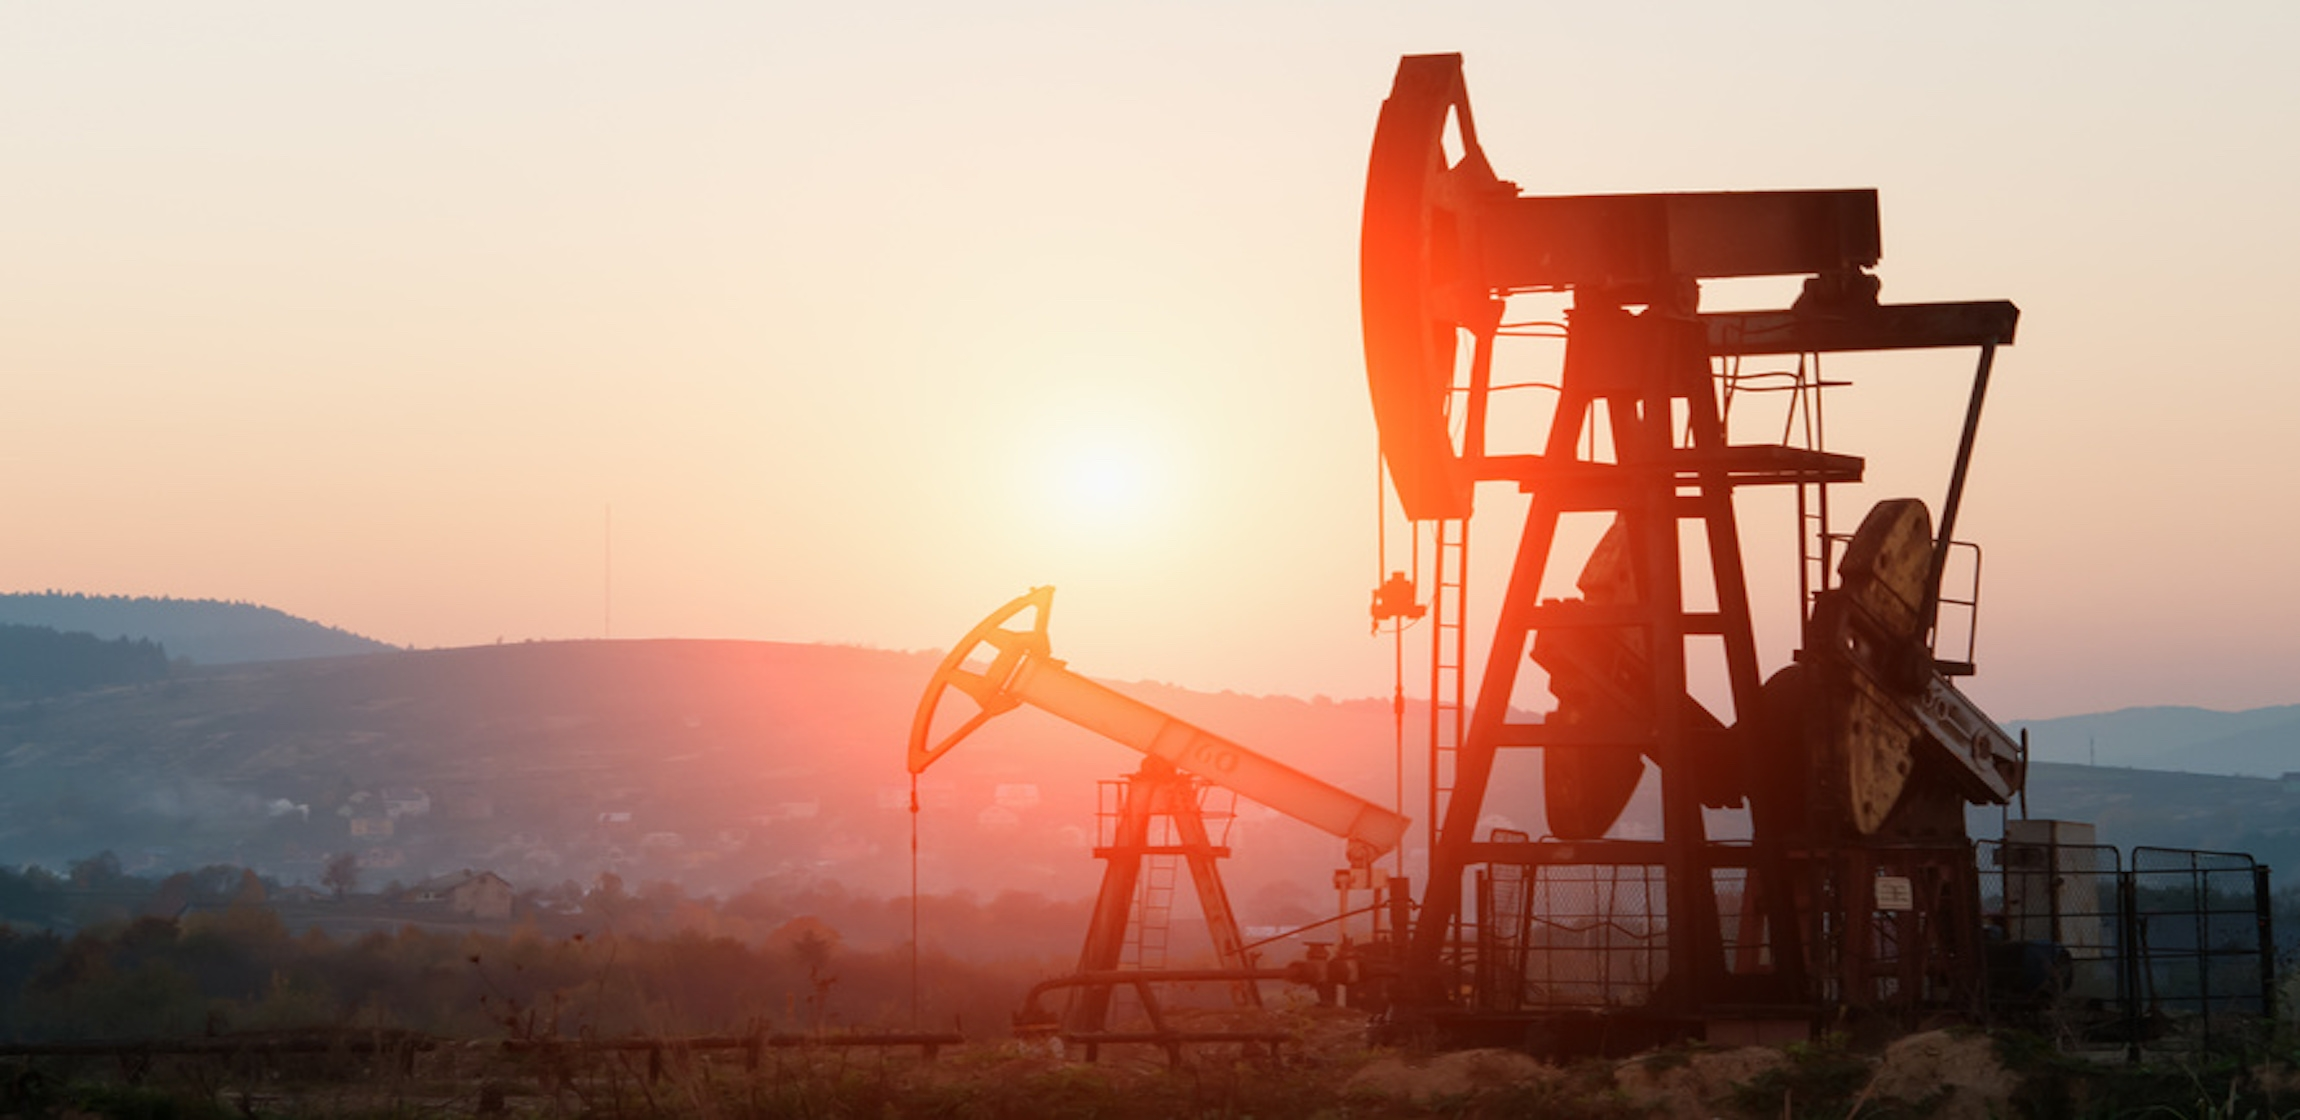 2019 Global oil demand growth slowing to 1 41 Mln BPD